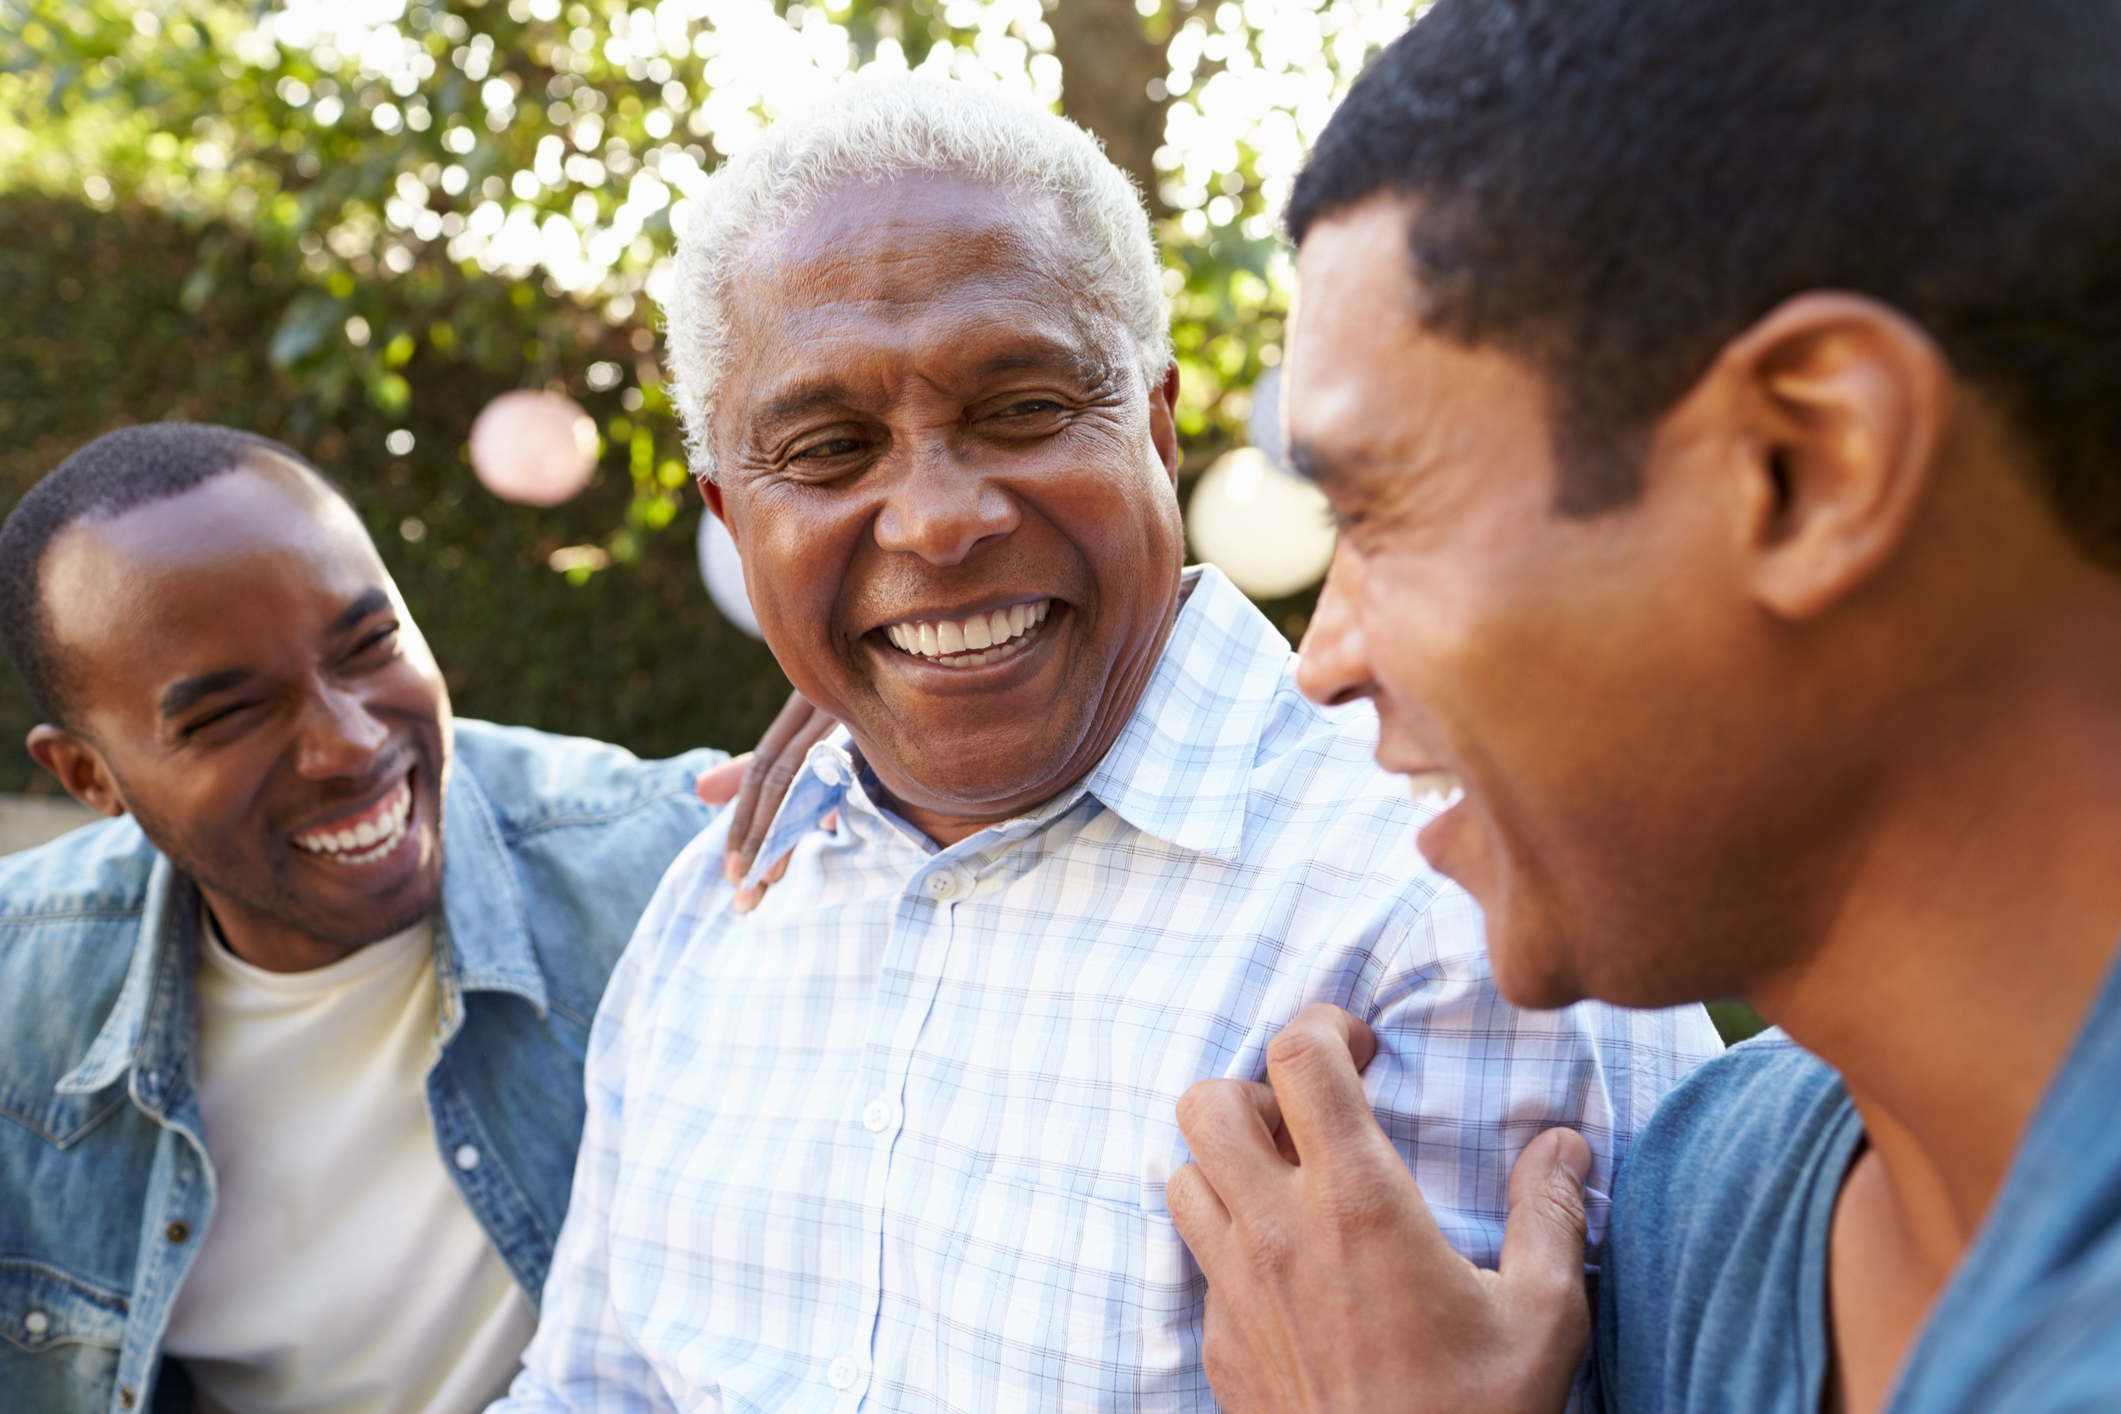 Caring for adults - Adults often have unique challenges. Here we discuss tips for navigating use.